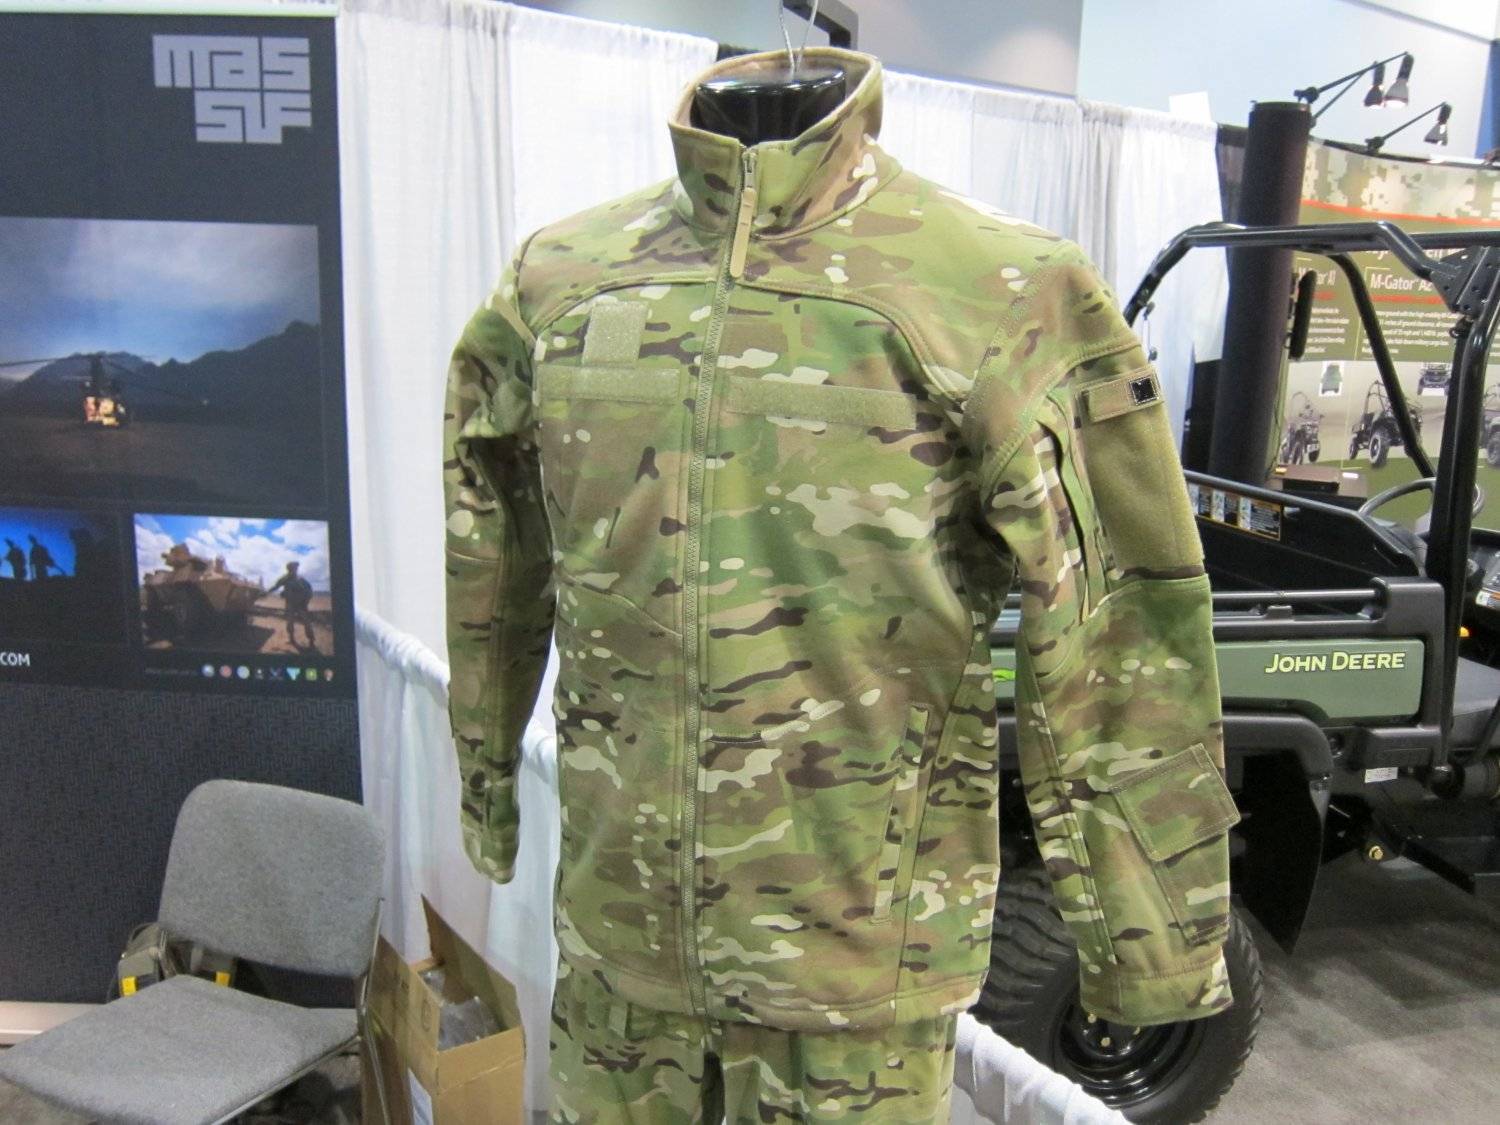 <!--:en-->Massif Mountain Gear Flame-Resistant (FR) Combat Clothing in Crye MultiCam Camouflage Pattern: High-End Military-Grade Tactical Jackets, Combat Shirts, and Tactical Pants for Military Special Operations Forces (SOF) and Civilian Tactical Shooters<!--:-->